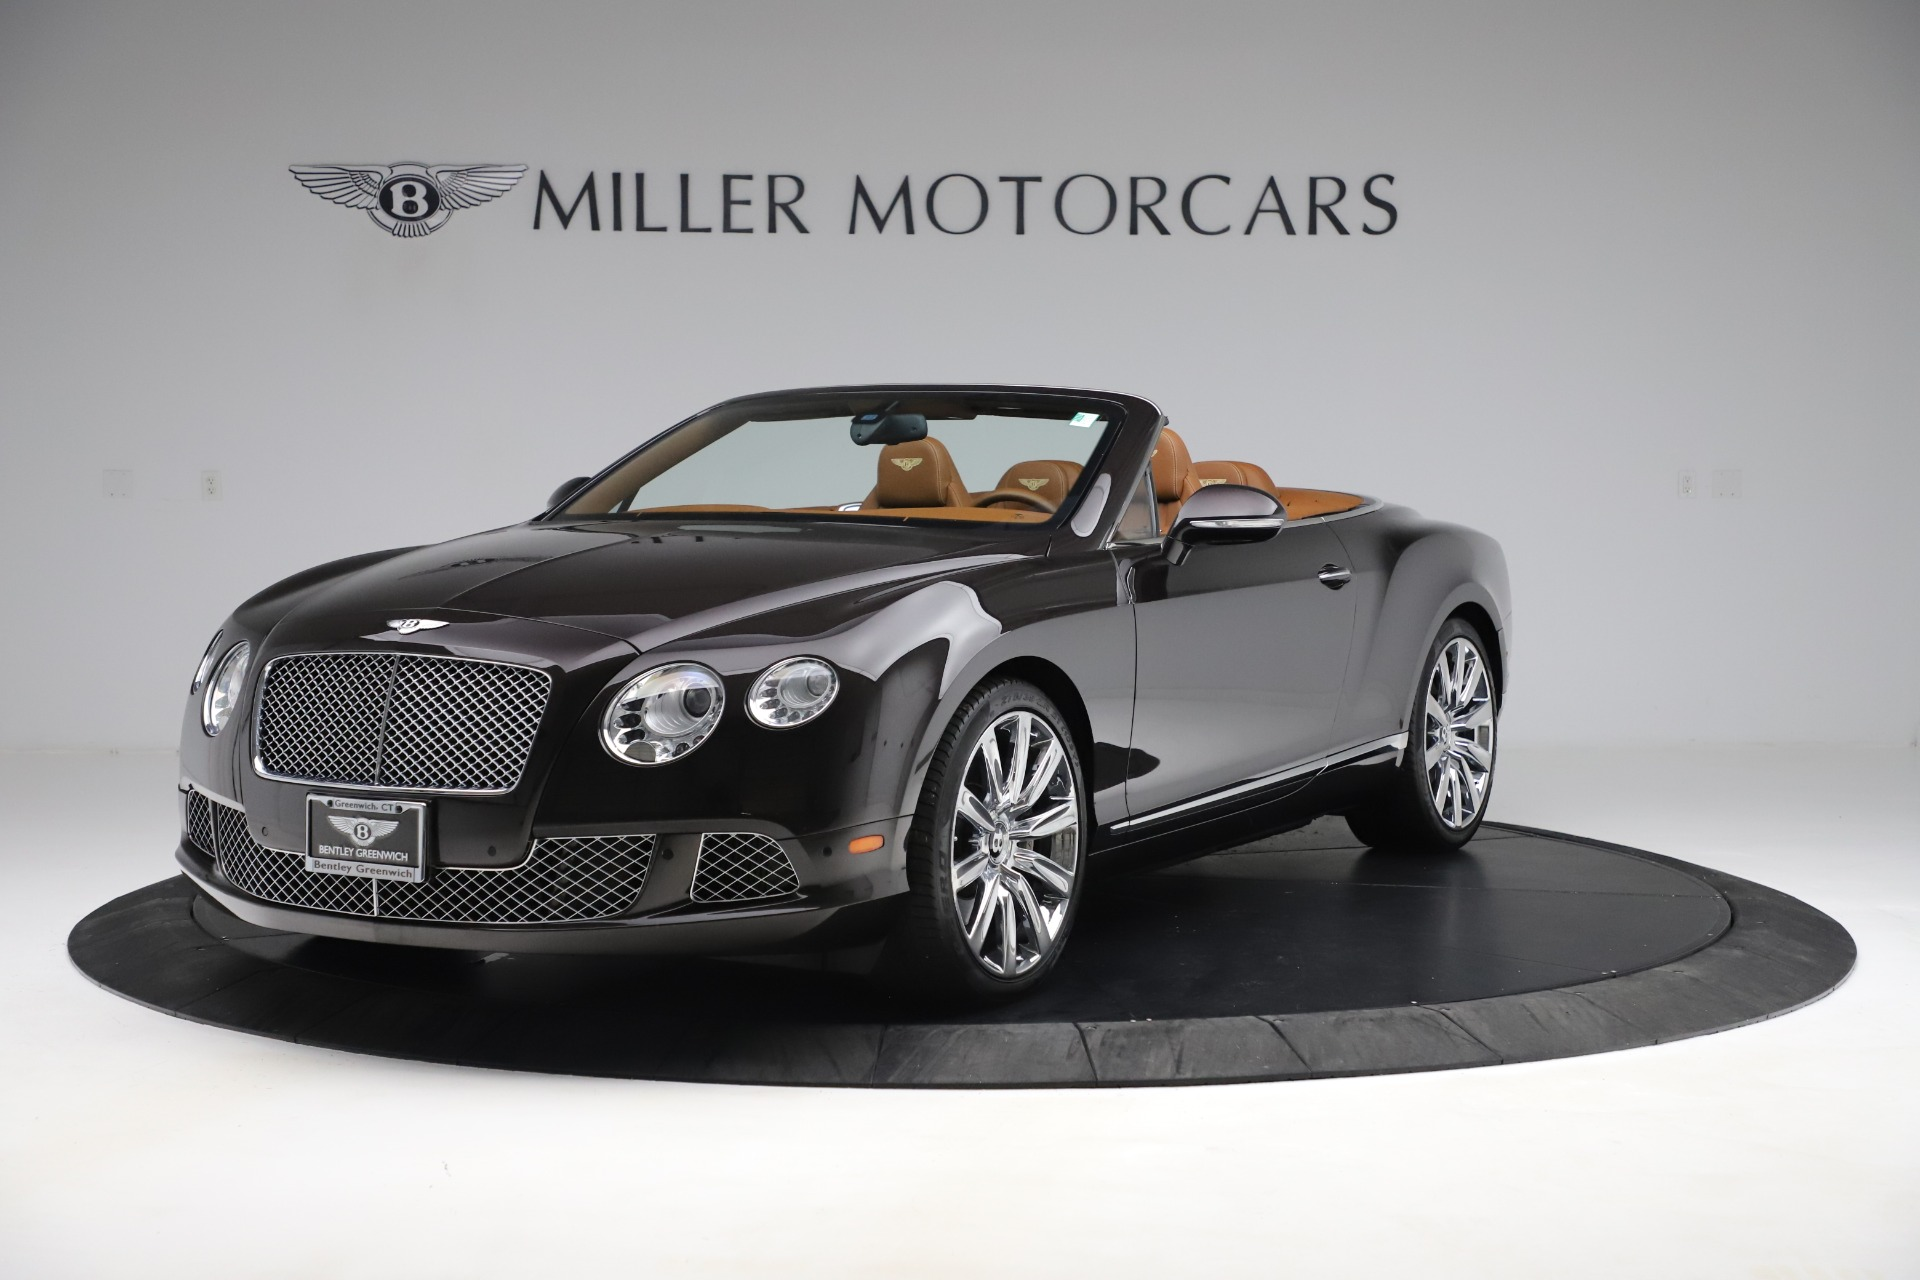 Used 2013 Bentley Continental GT W12 for sale Sold at Aston Martin of Greenwich in Greenwich CT 06830 1